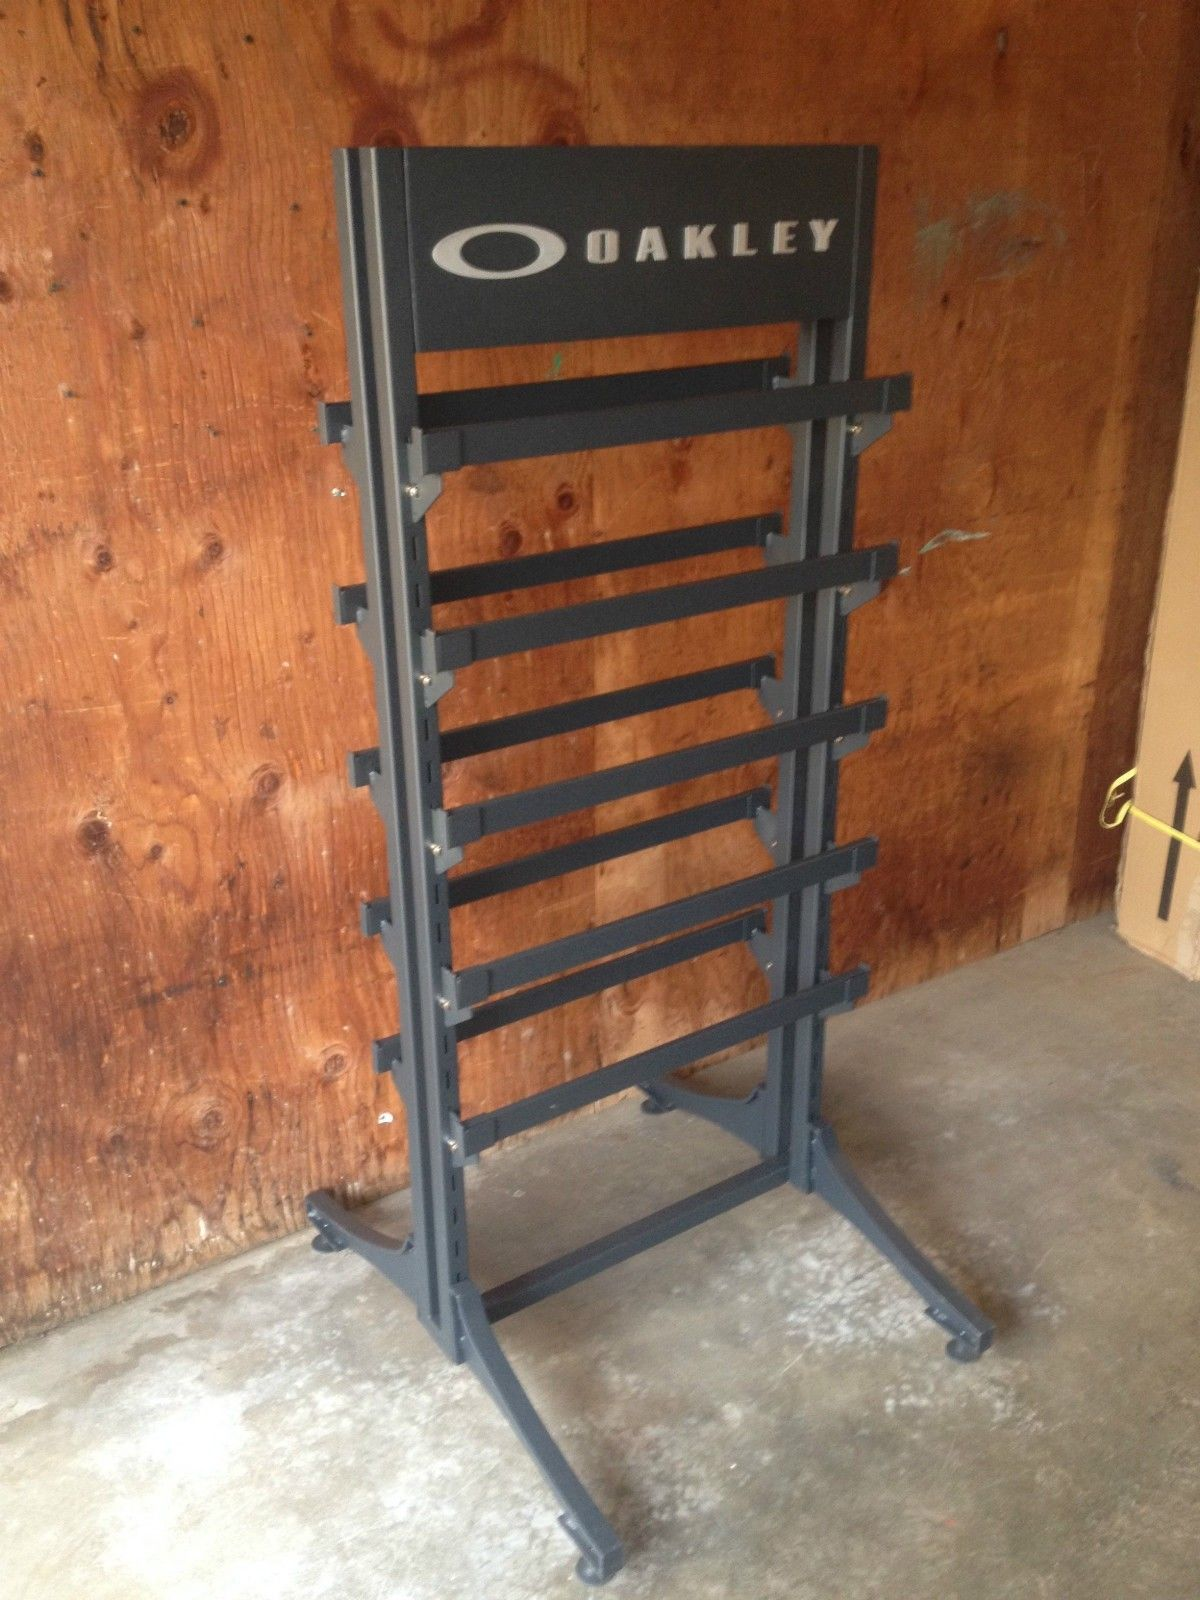 Oakley cooler and Accessory rack (SWFL) - O accy rack 3.jpg